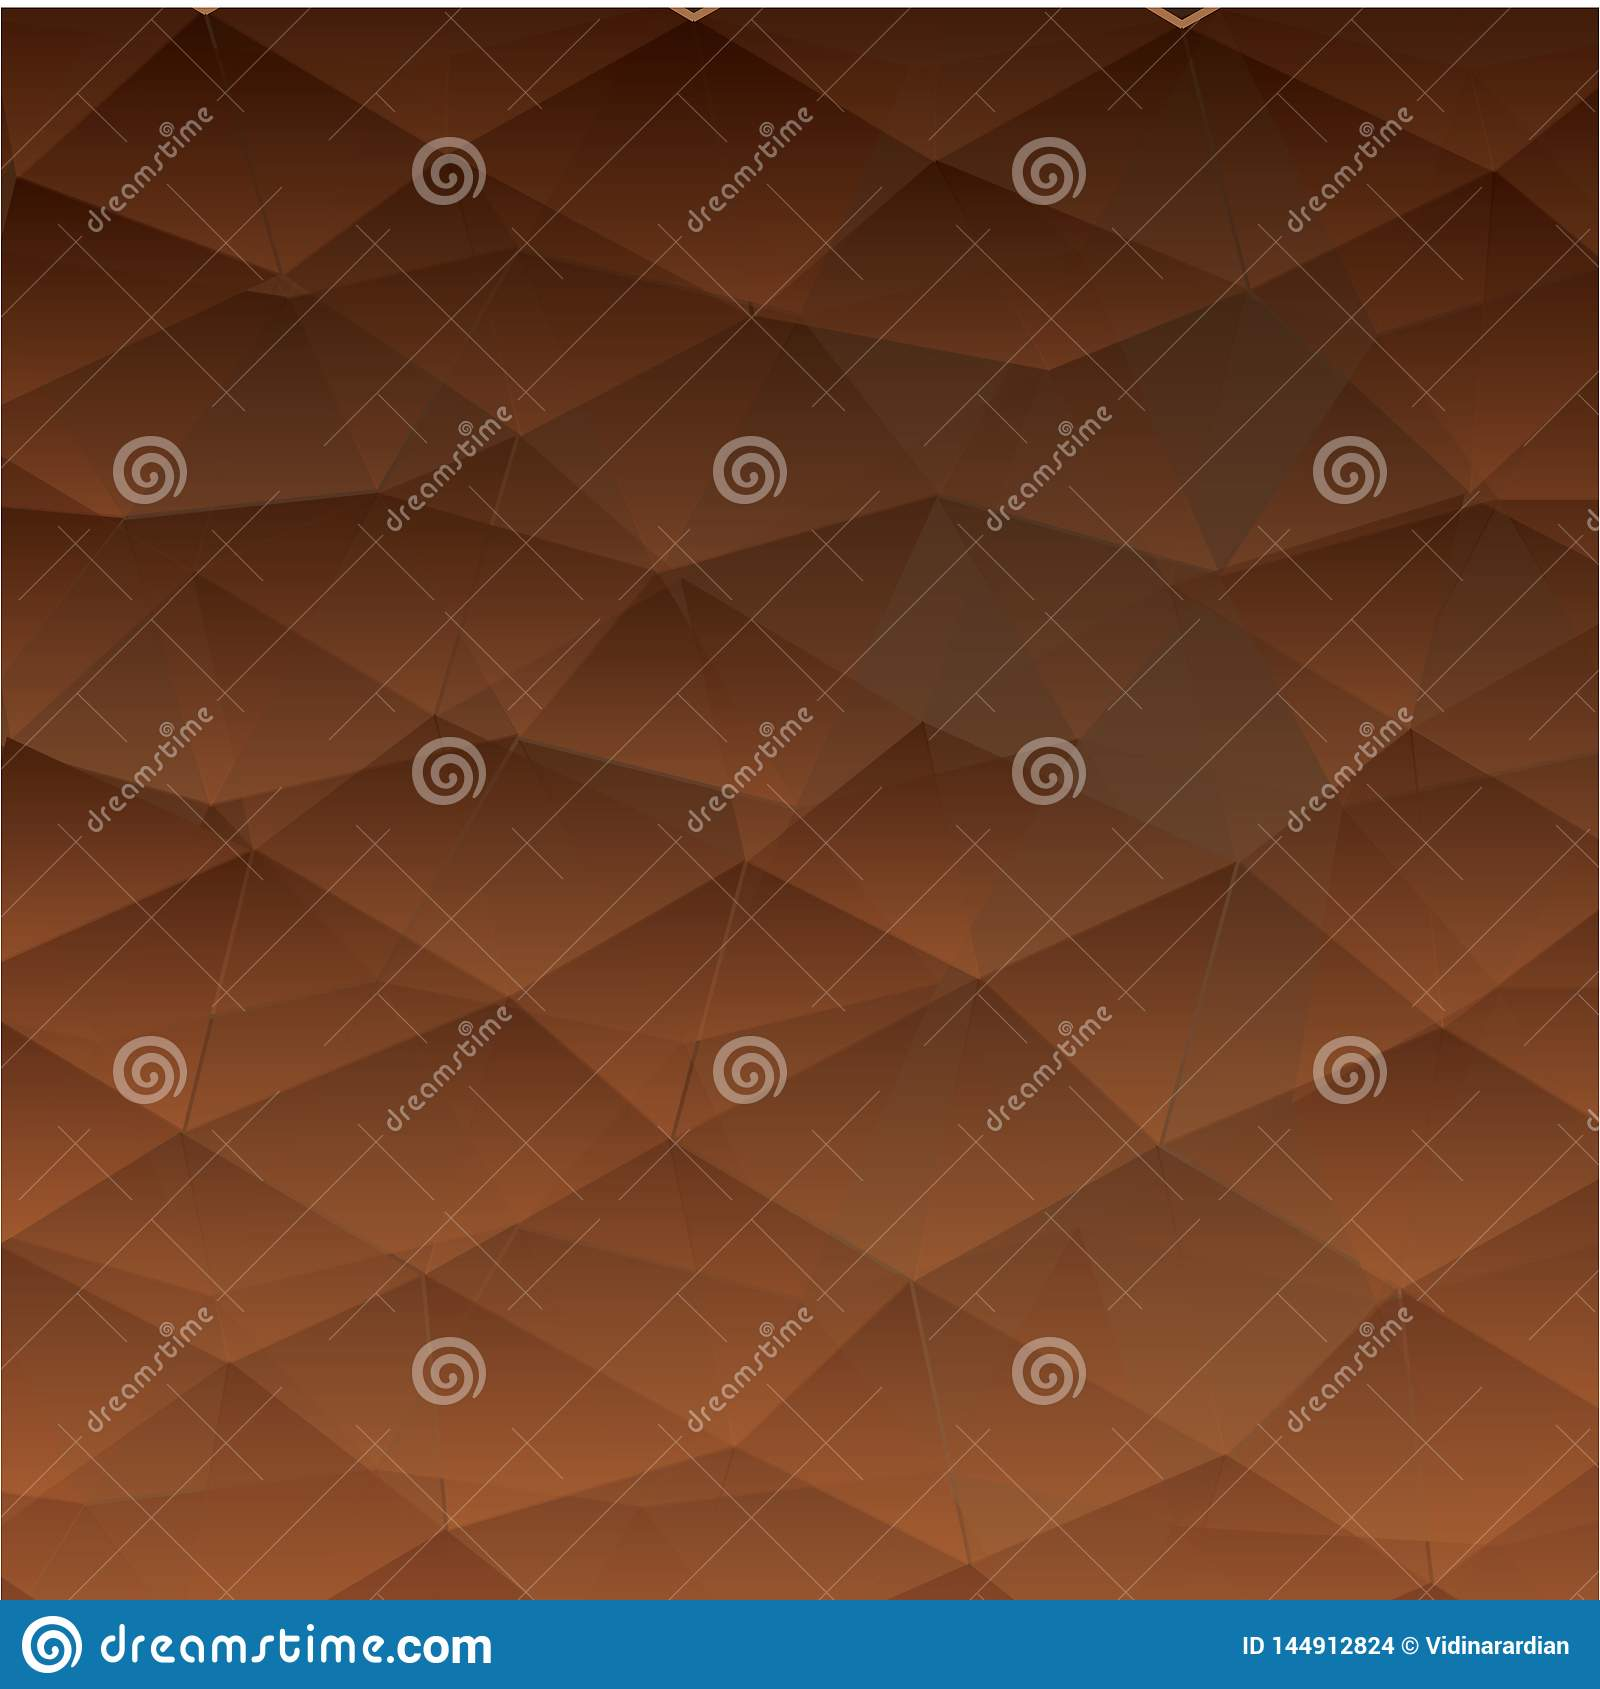 Abstract textured polygonal background. - Vector